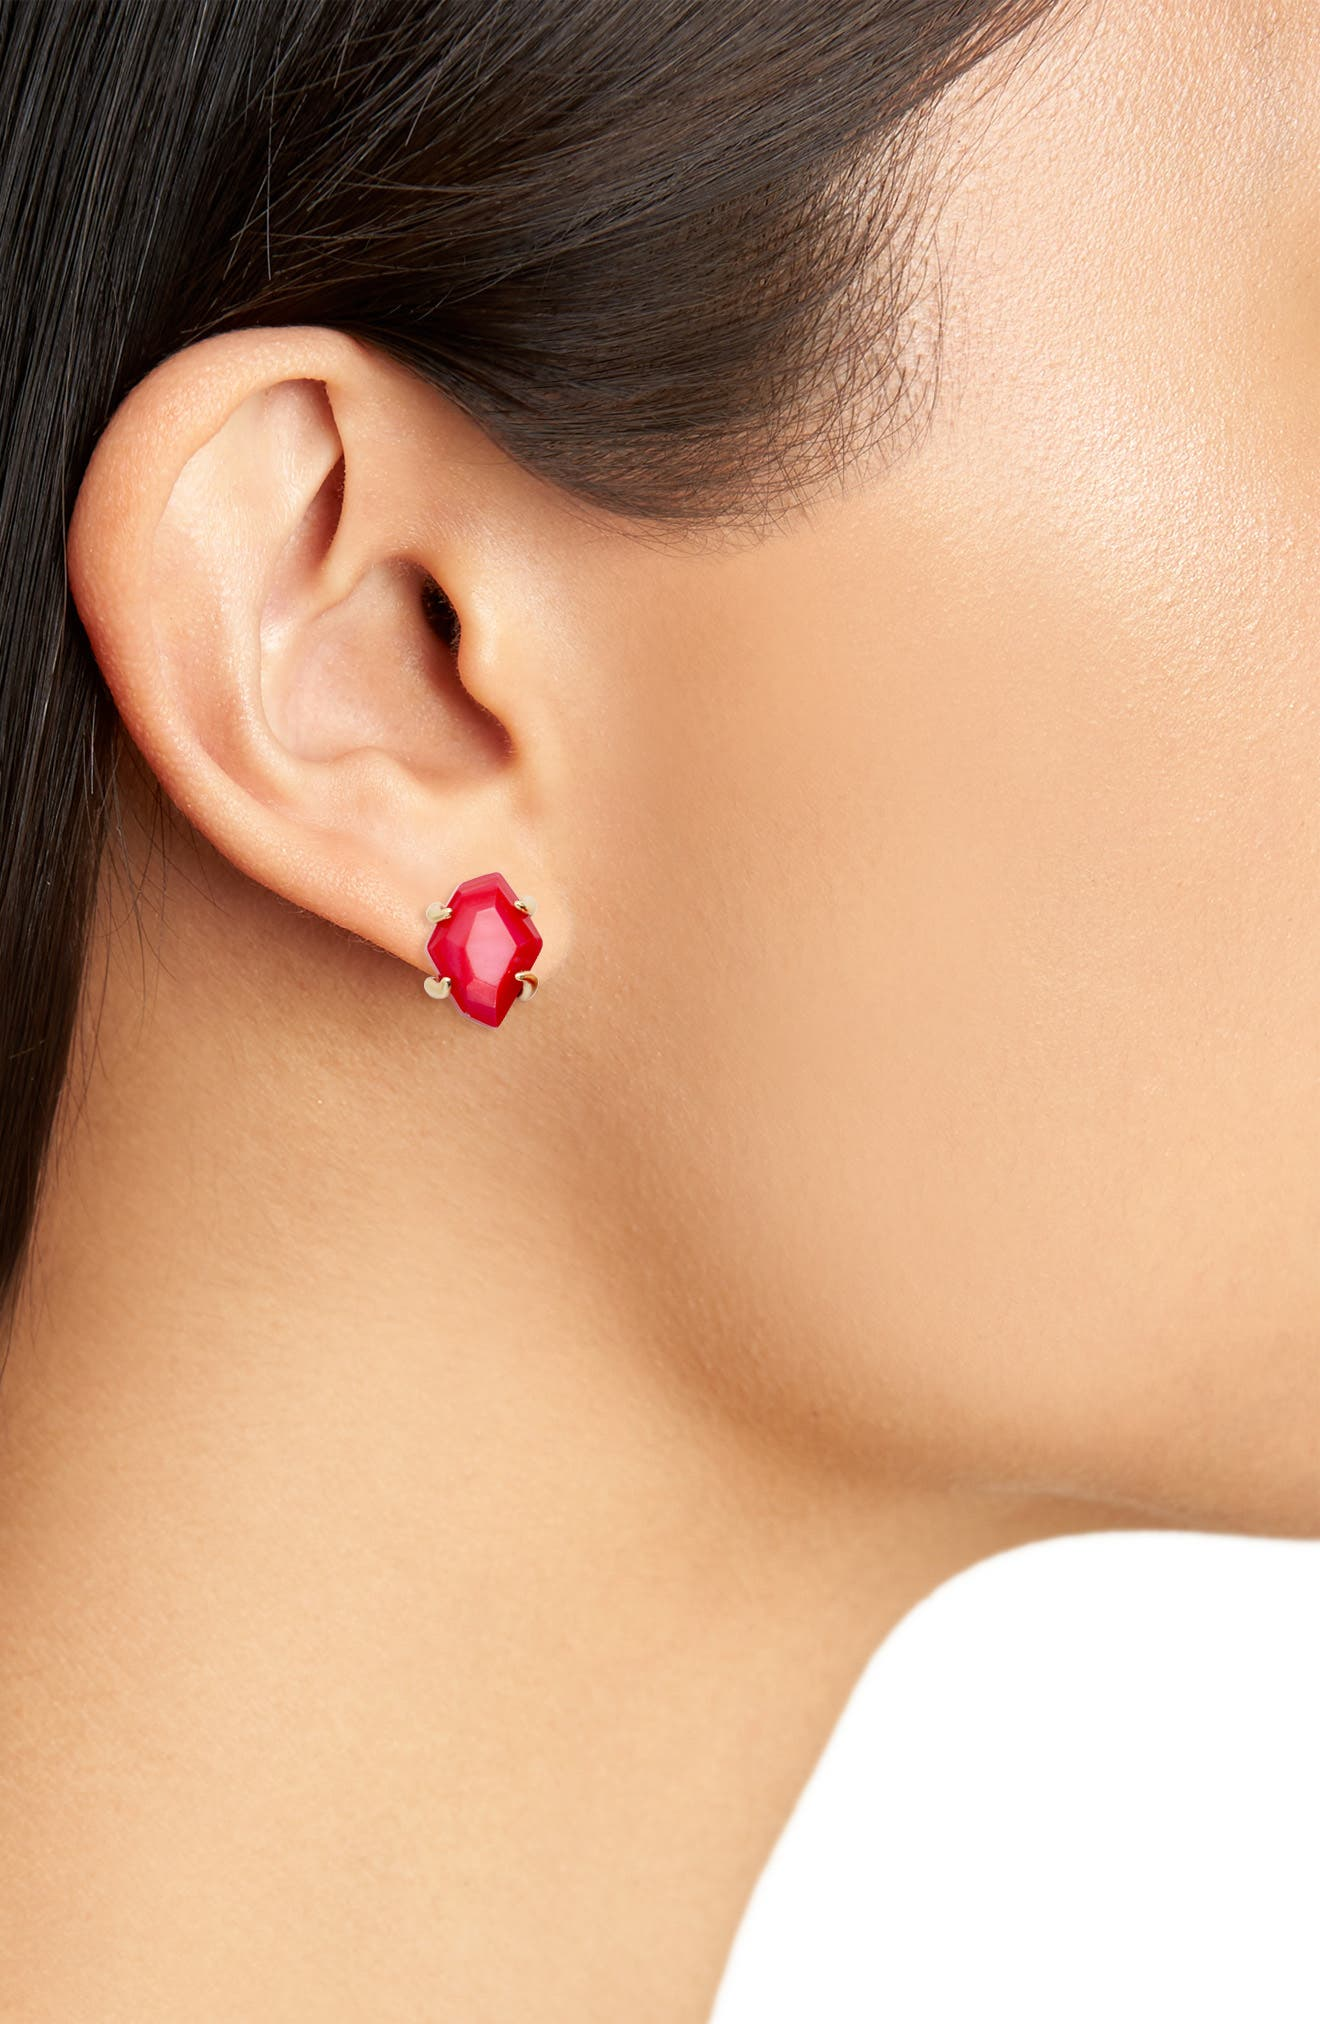 Inaiyah Stud Earrings,                             Alternate thumbnail 2, color,                             Red Mop/ Gold